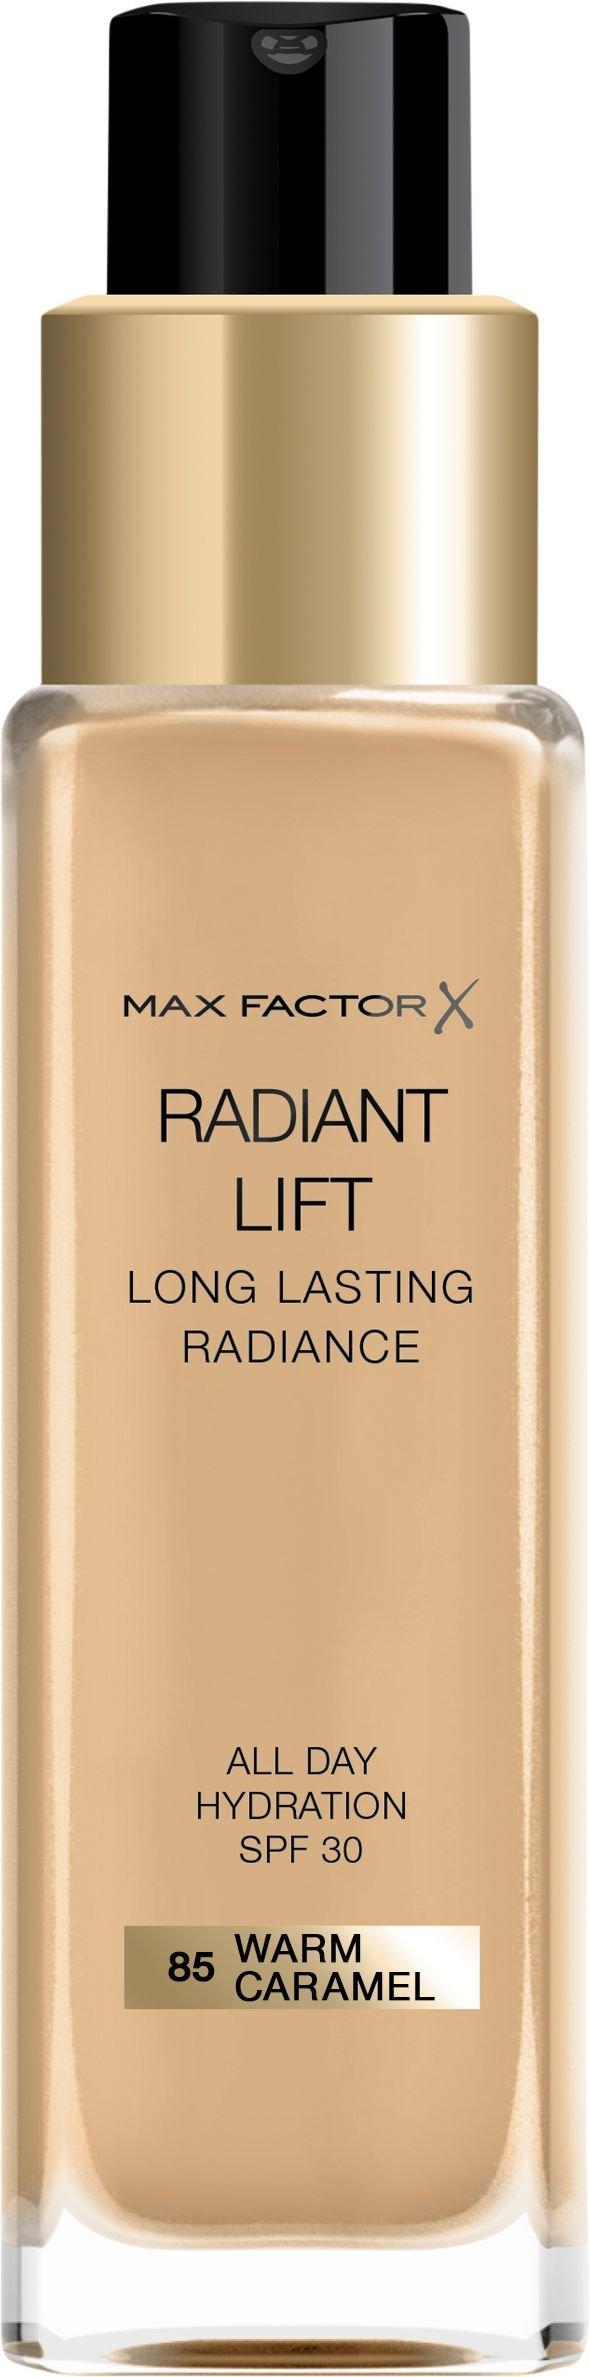 Max Factor Foundation - Radiant Lift Long Lasting Radiance - 085 Warm Cashmere